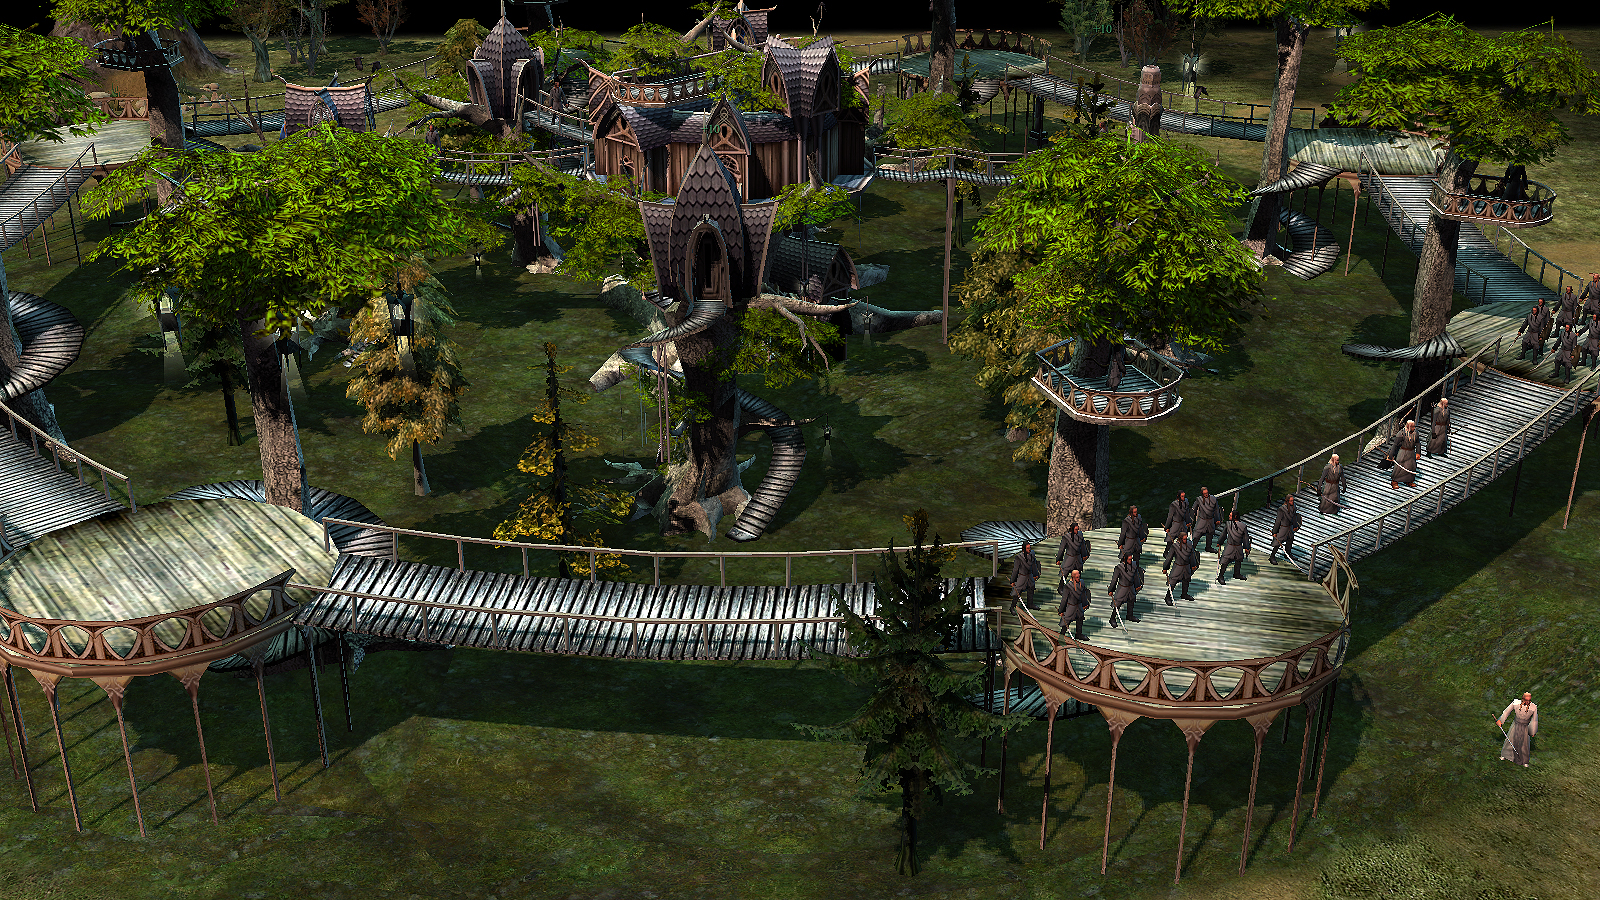 lothlorien fortress image edain mod for battle for middle earth ii